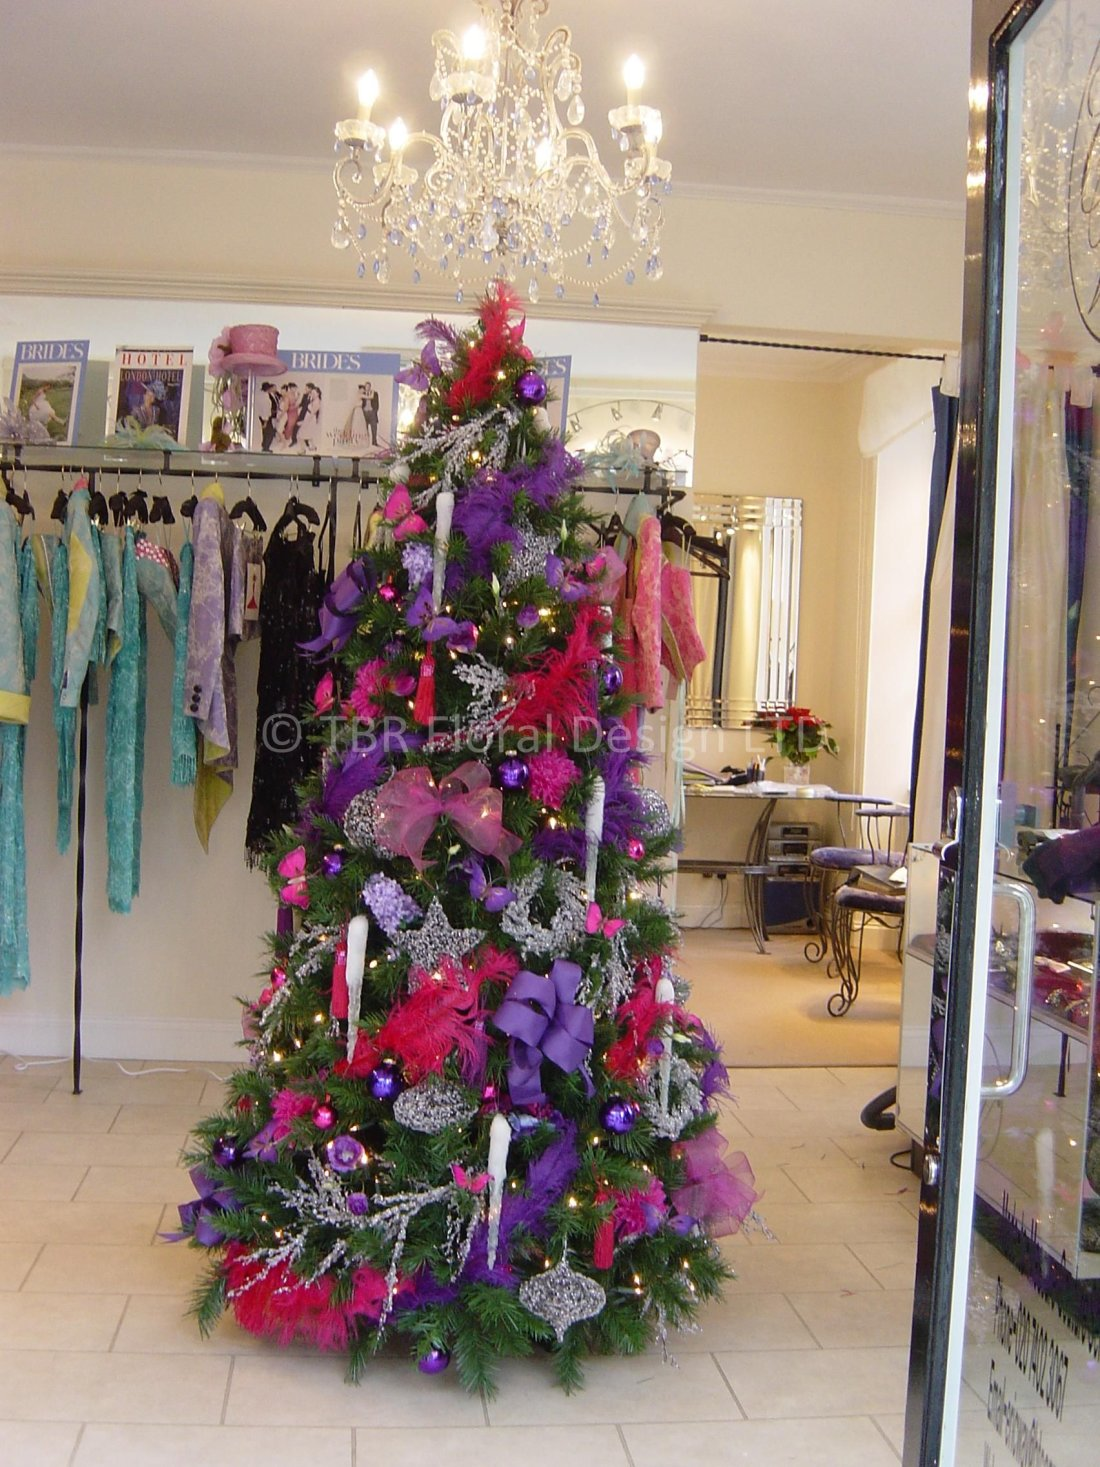 fashion-pinks-and-purple-shop-front-xmas-tree